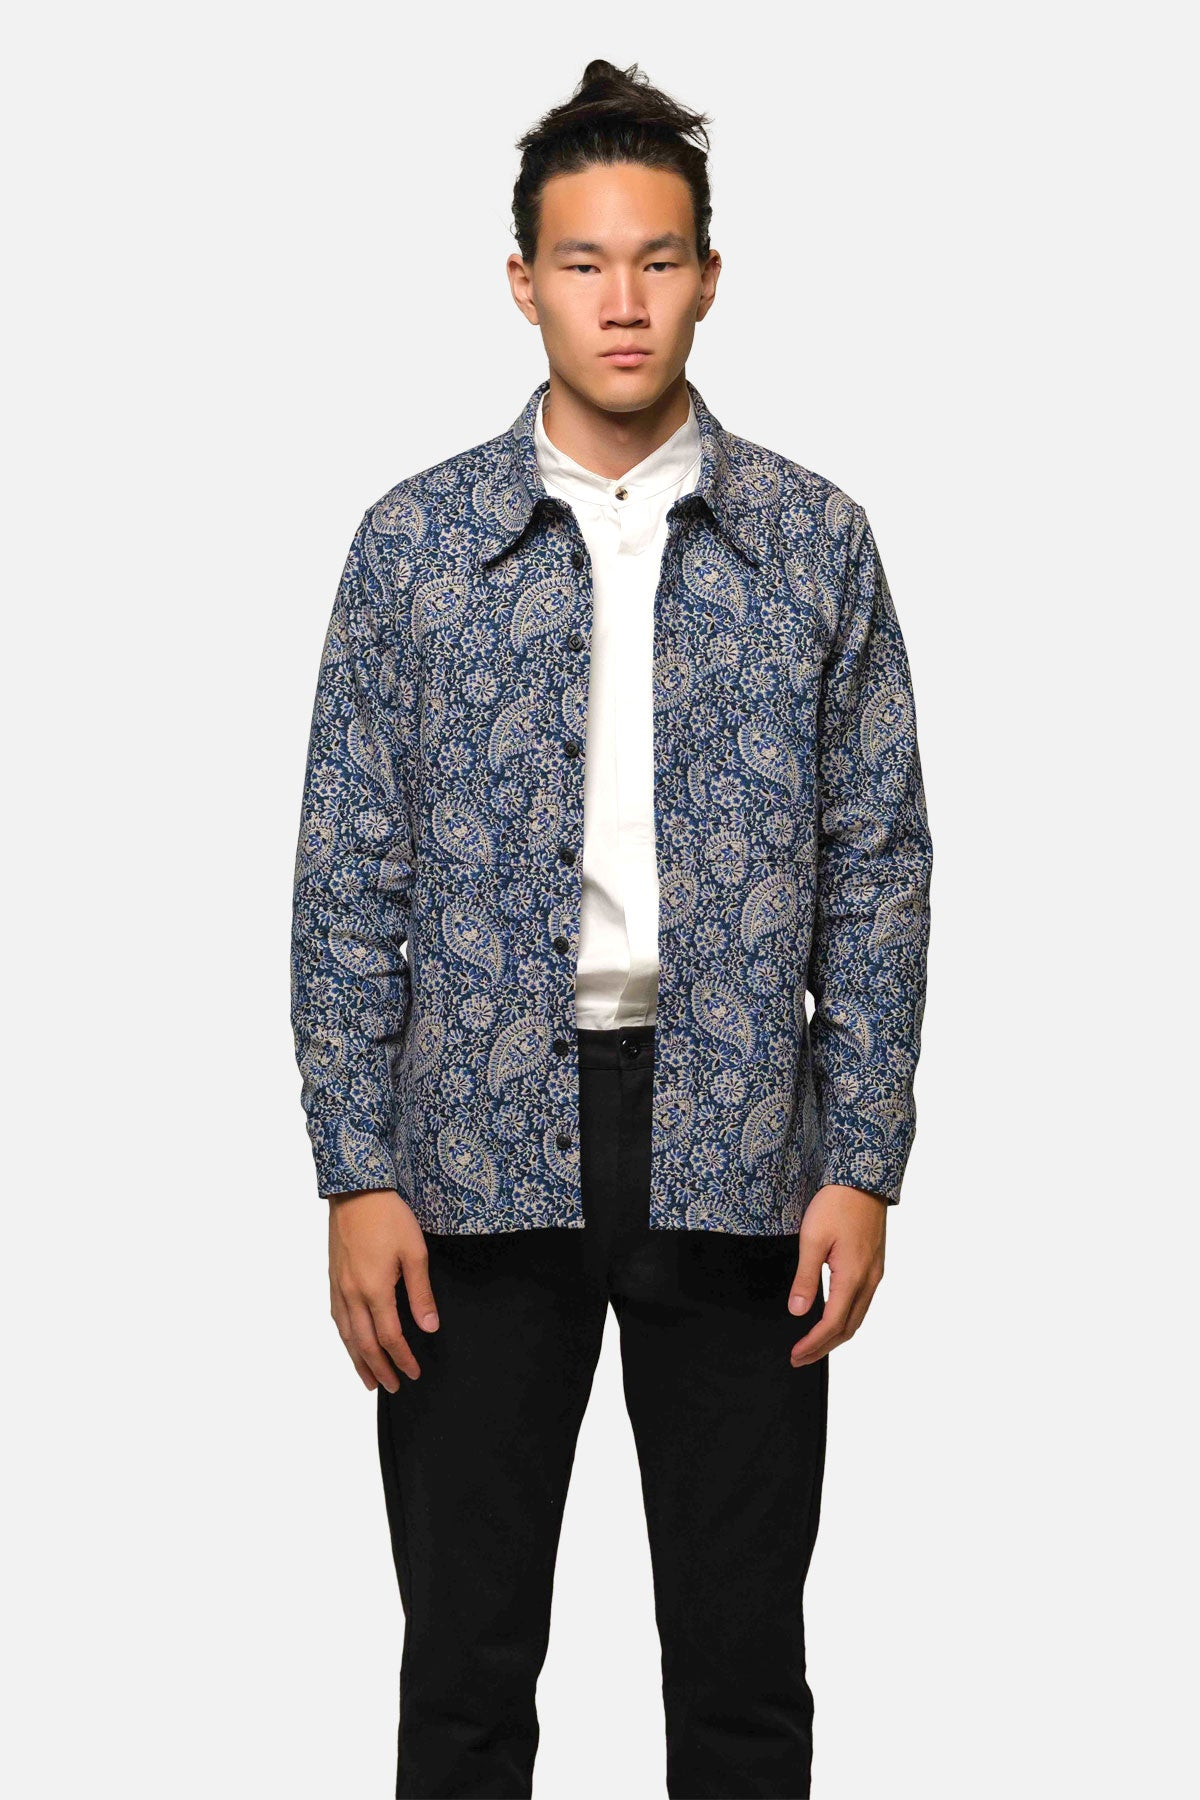 BROADWAY SHIRT IN BLUE PAISLEY - Fortune Goods